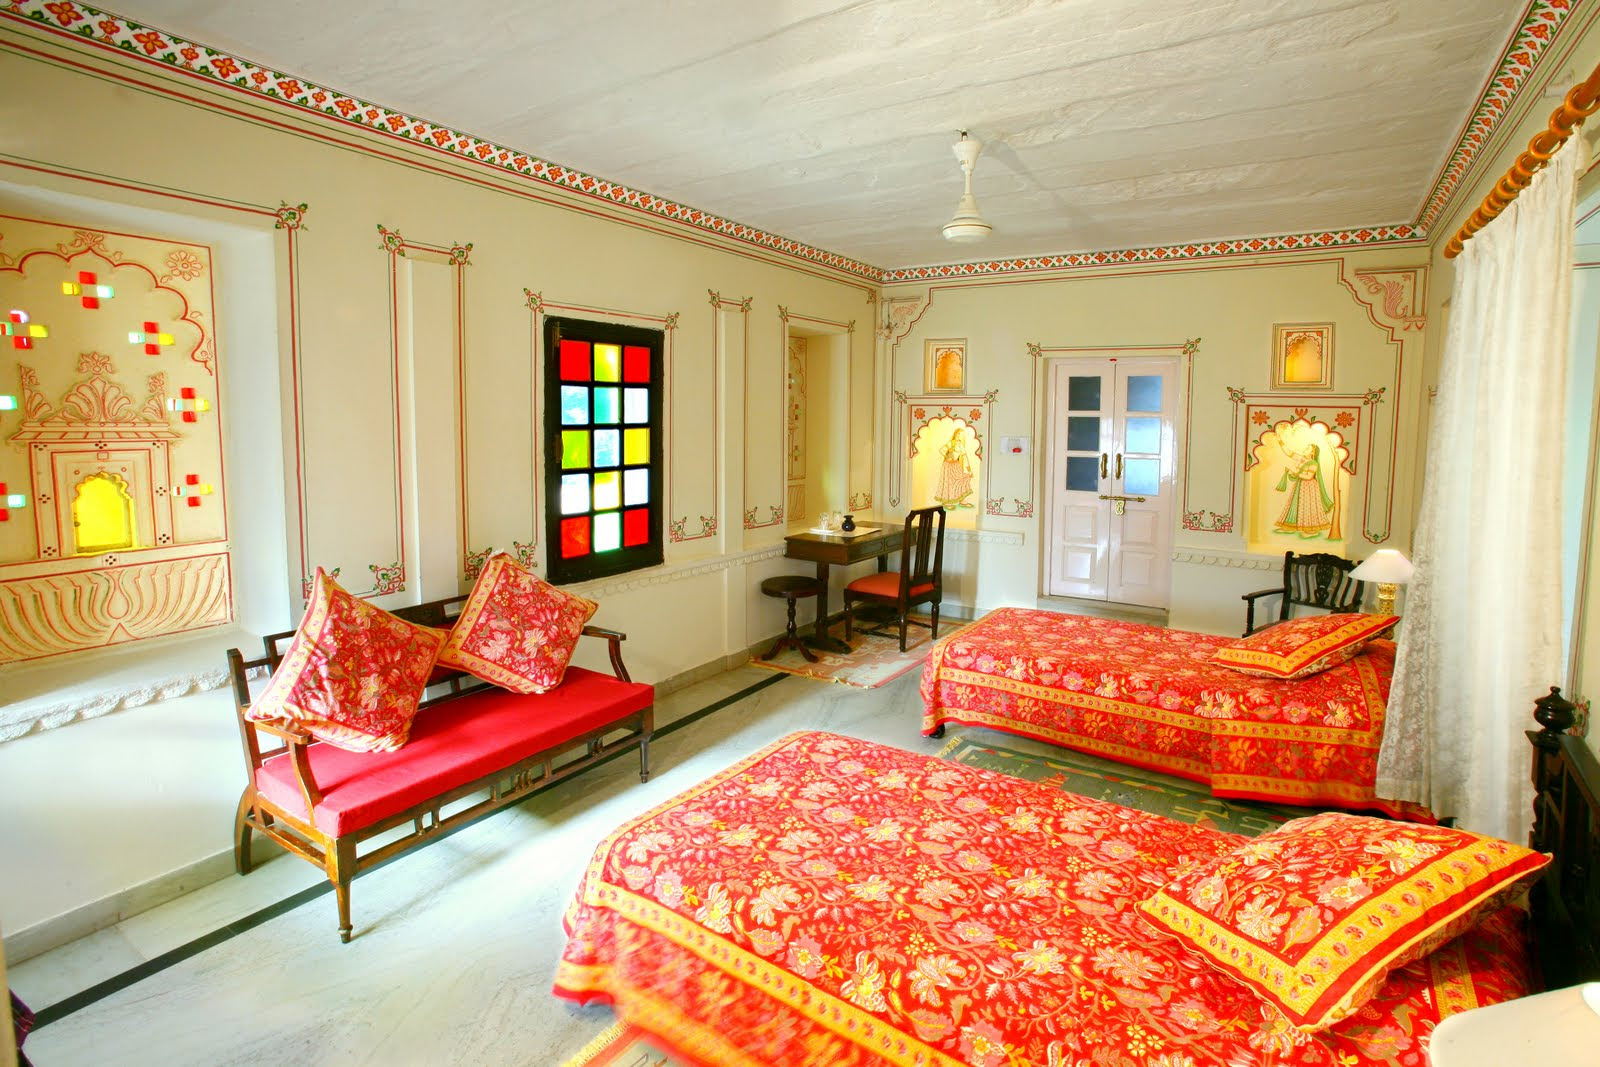 Rajasthani Style Interior Design beds and drapes